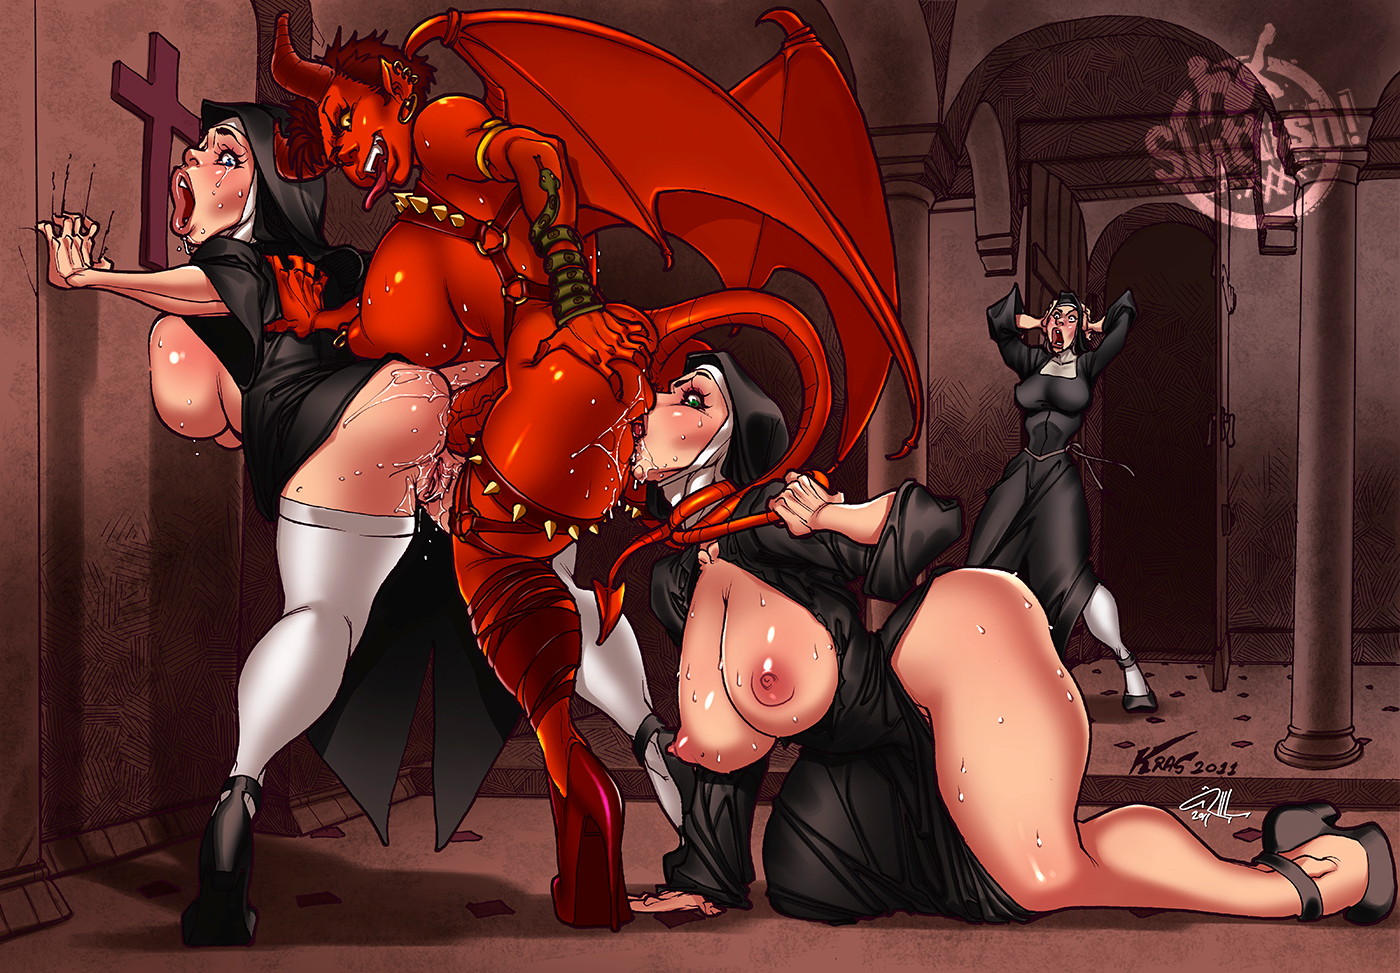 SLUTTISH_Nuns